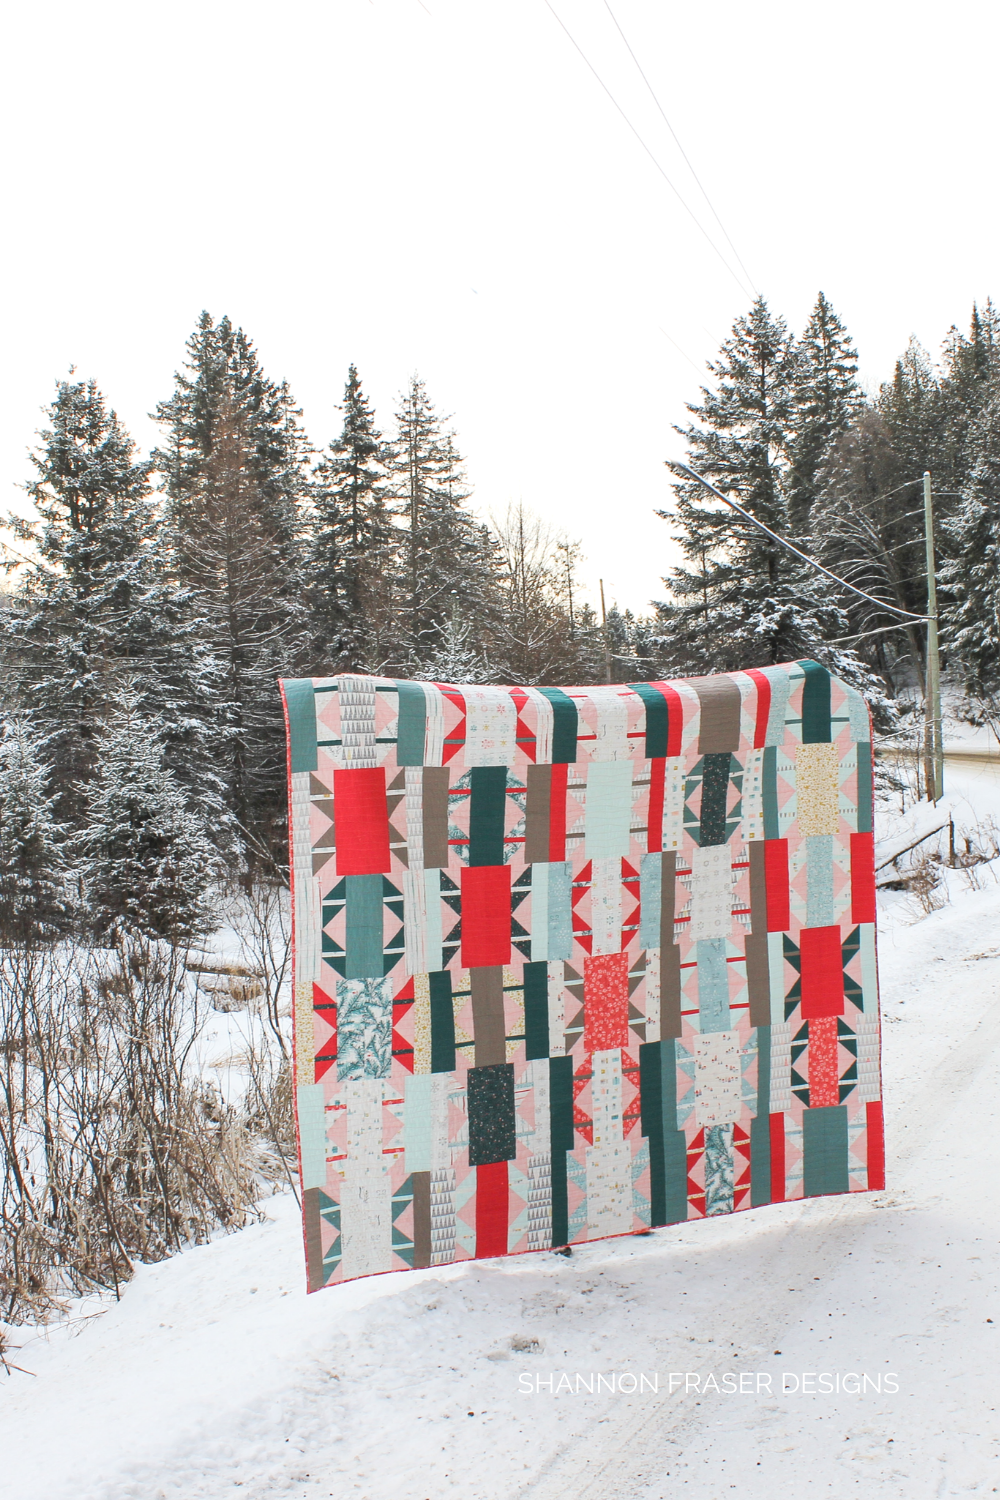 Shattered Star Holiday Quilt in the Winter Wild | Features AGF Little Town paired with Pure Solids and machine quilted in 40wt Aurifil Thread | Shannon Fraser Designs #quiltsinnature